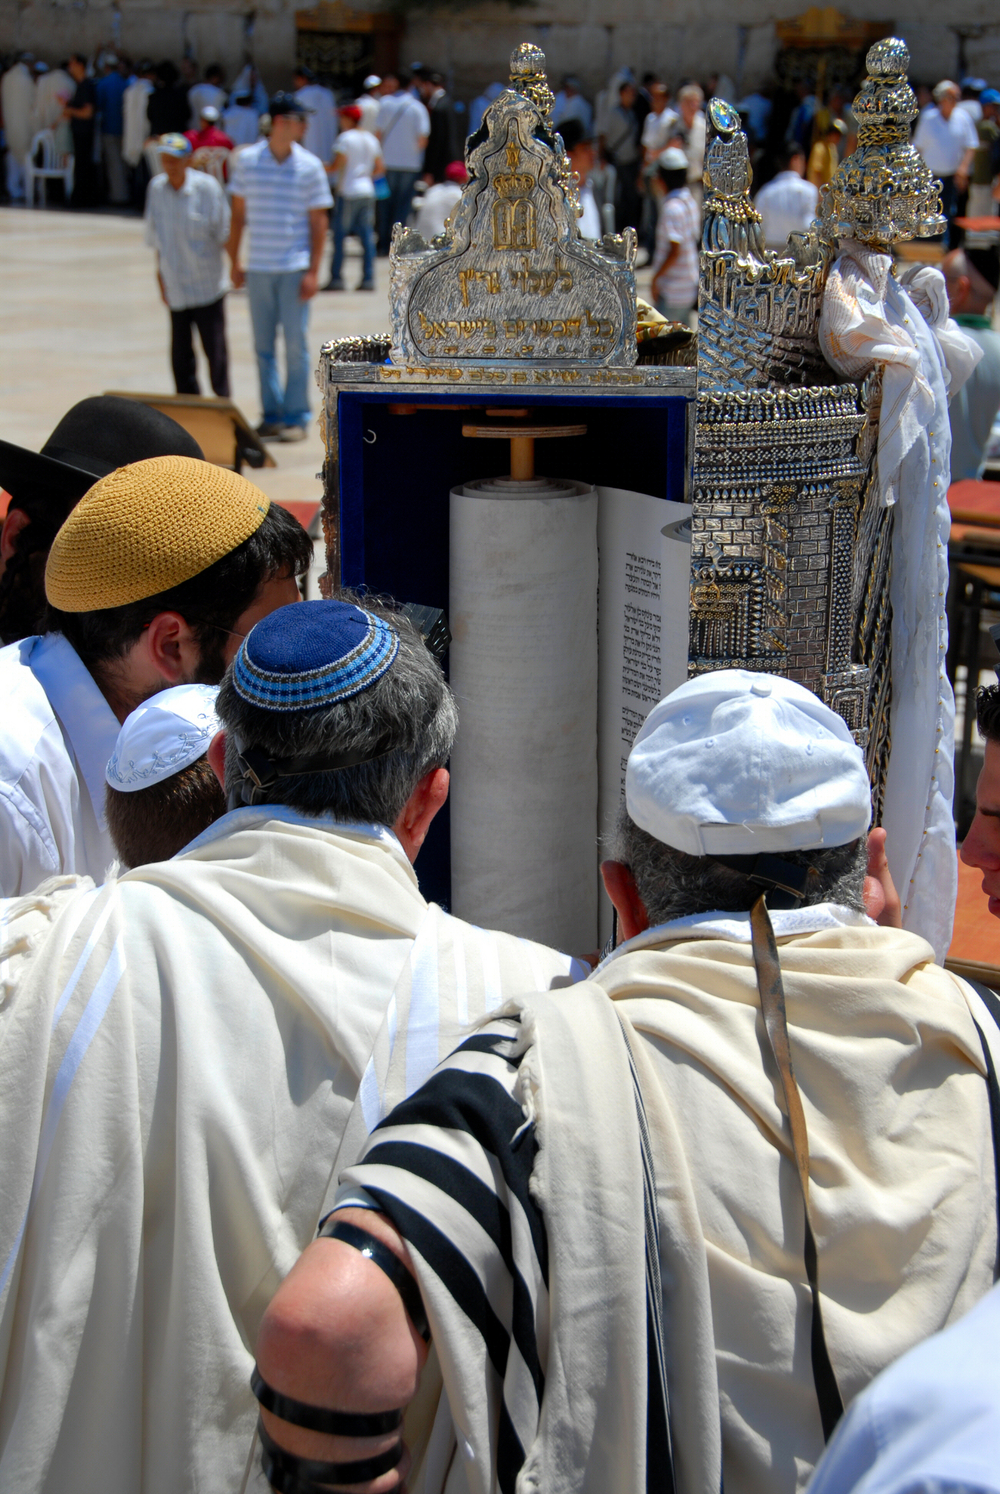 A Bar Mitzvah near the Wailing Wall in Jerusalem